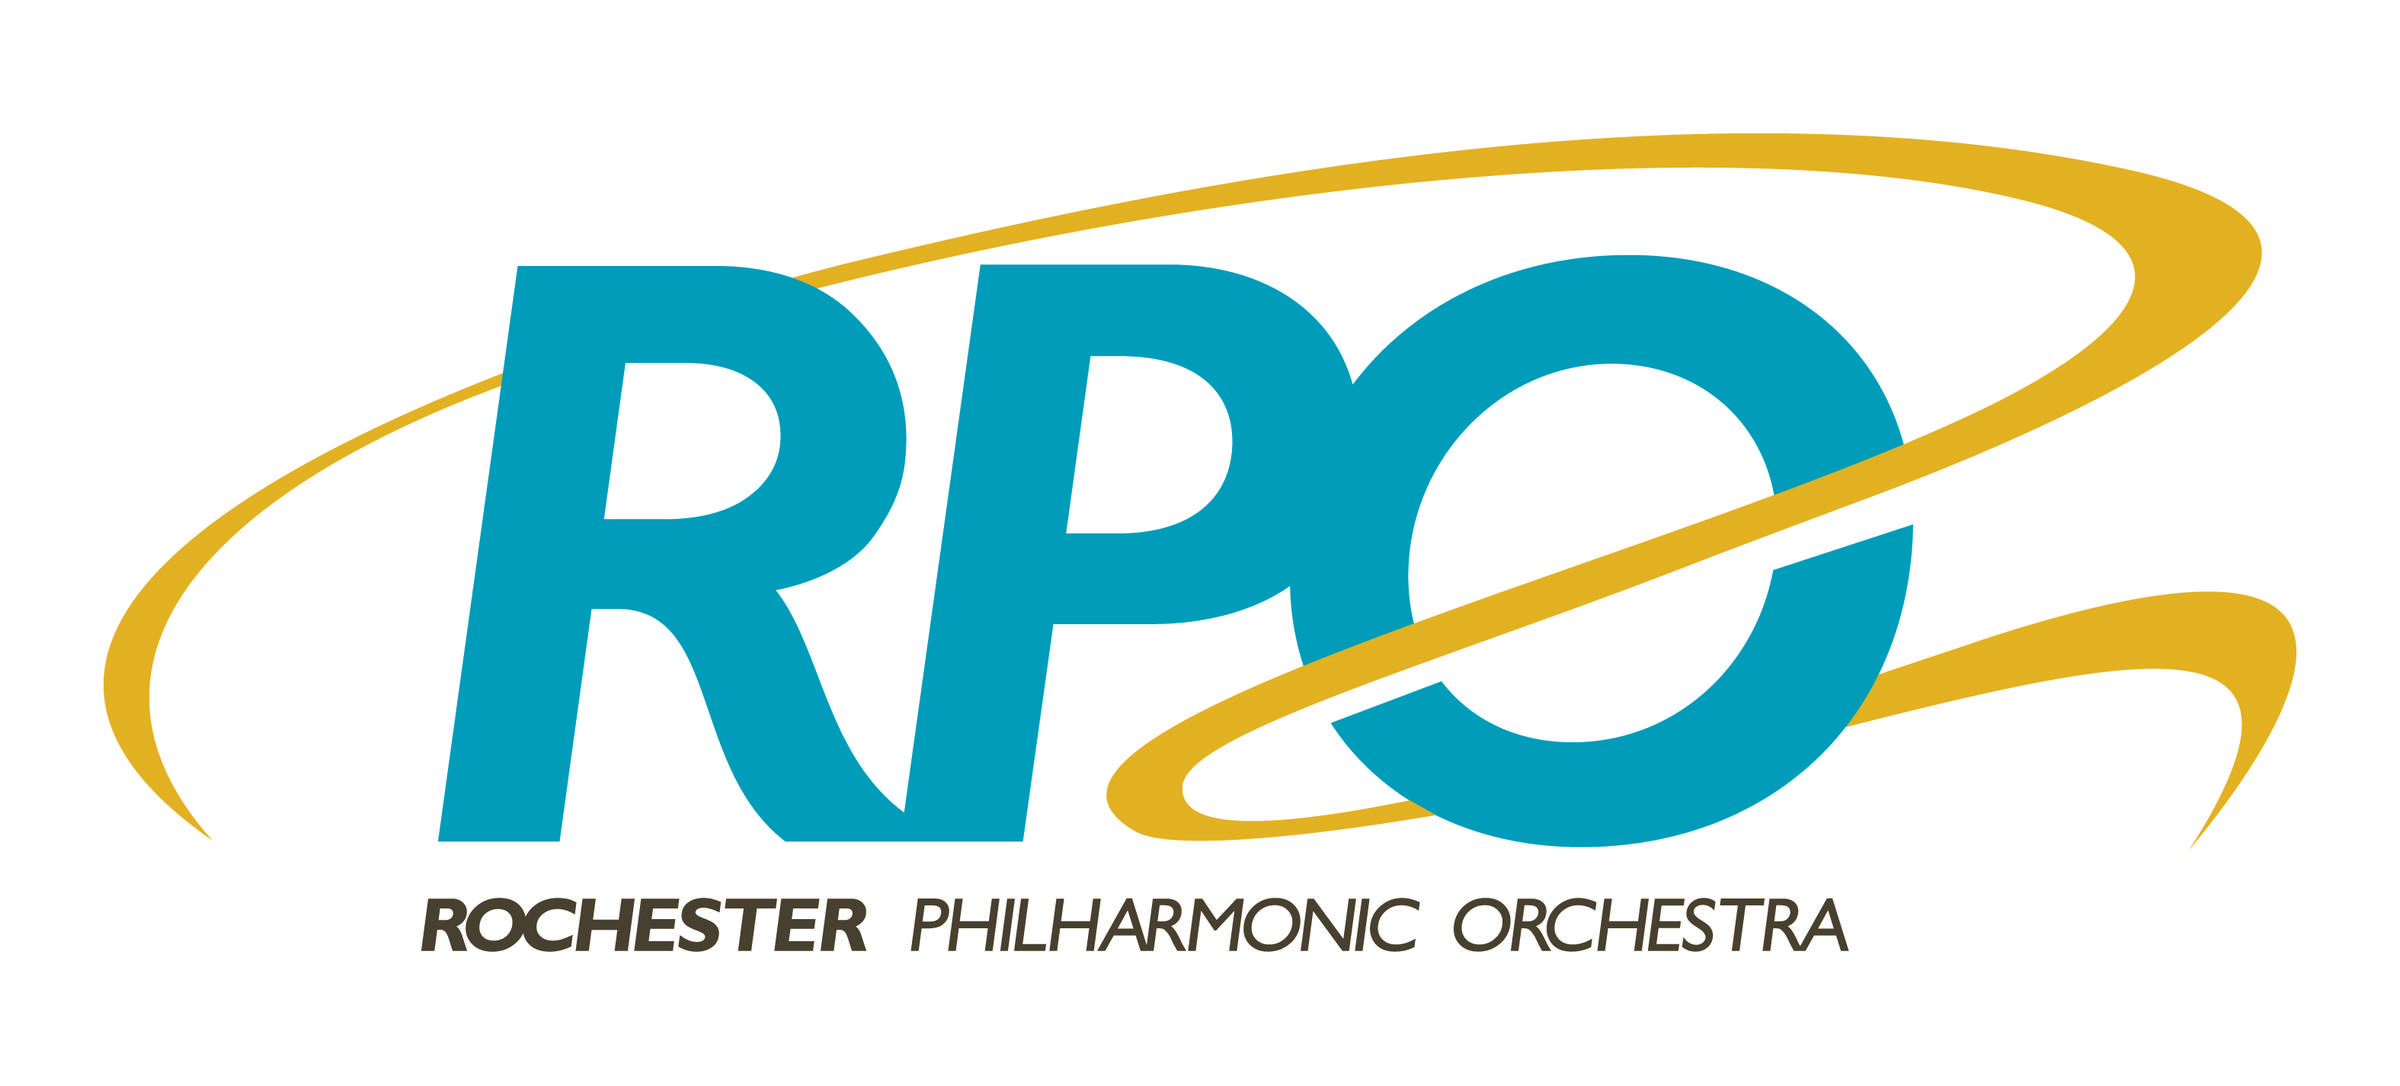 rpo_logo_3-color_307_7407_405coated.jpg